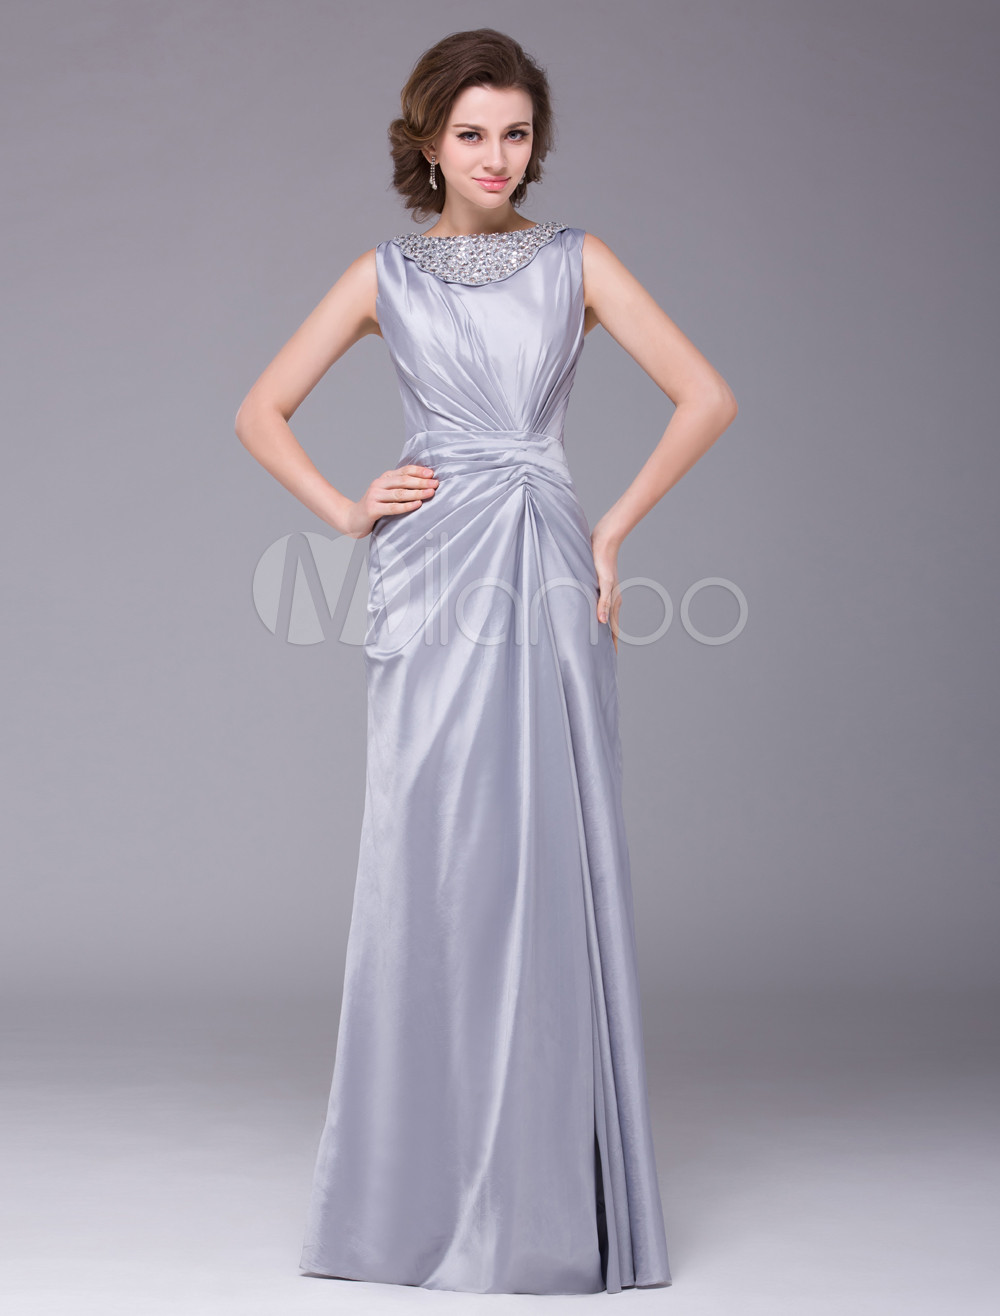 Silver Sleeveless Ruched Waistline Taffeta Mother of the Bride Dress Wedding Guest Dress